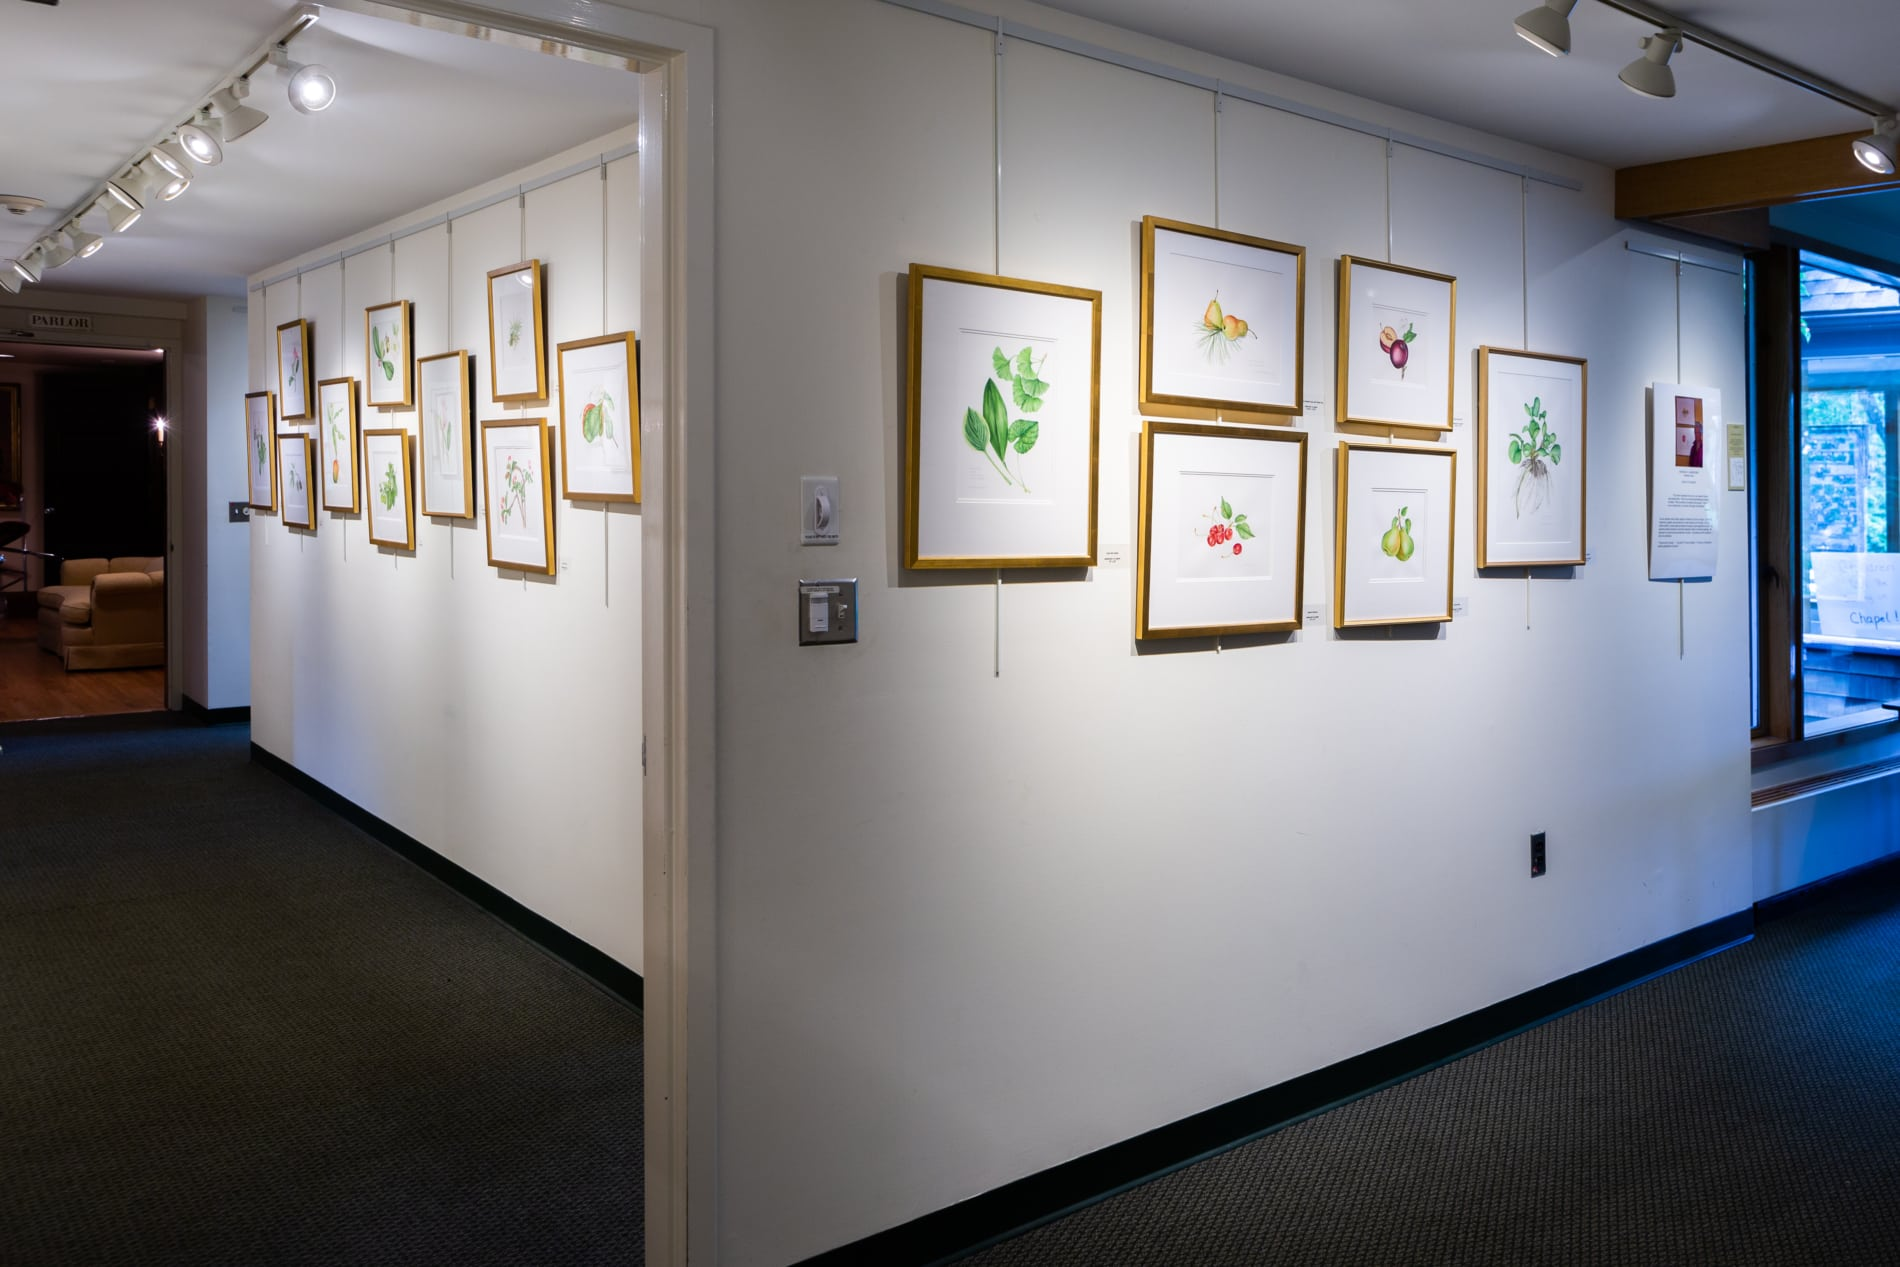 A wall displaying paintings